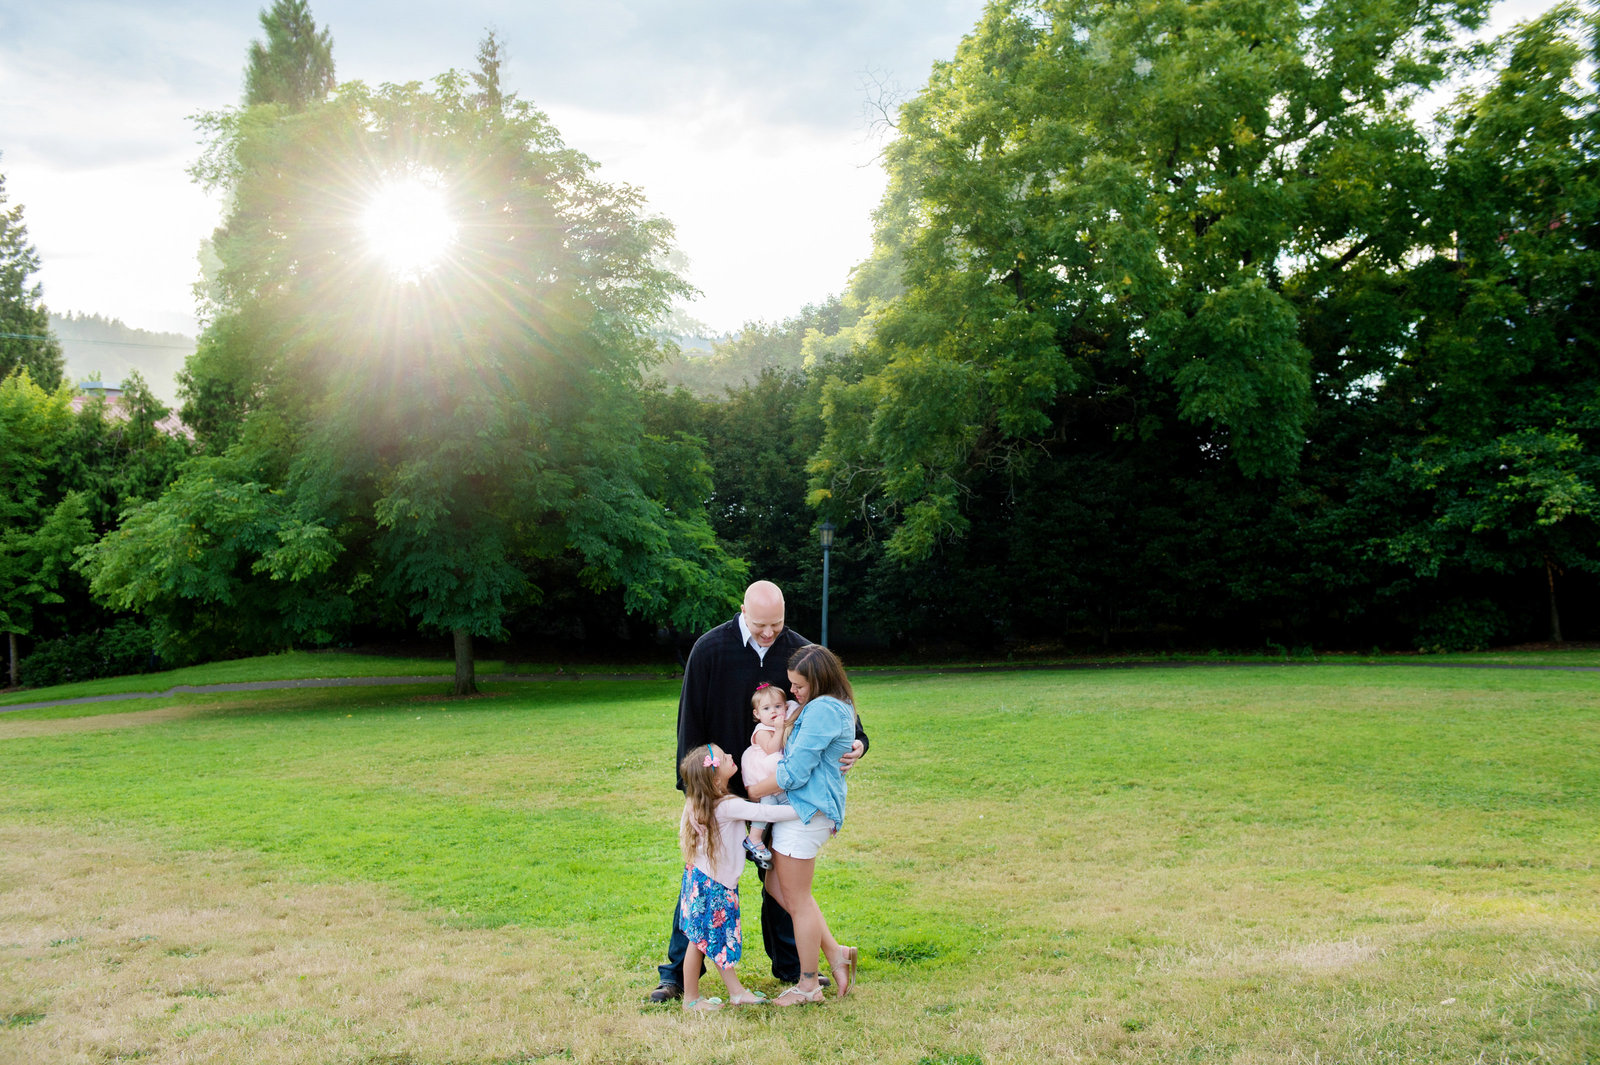 a family hugs together as the sun shines through the trees at cathedral park